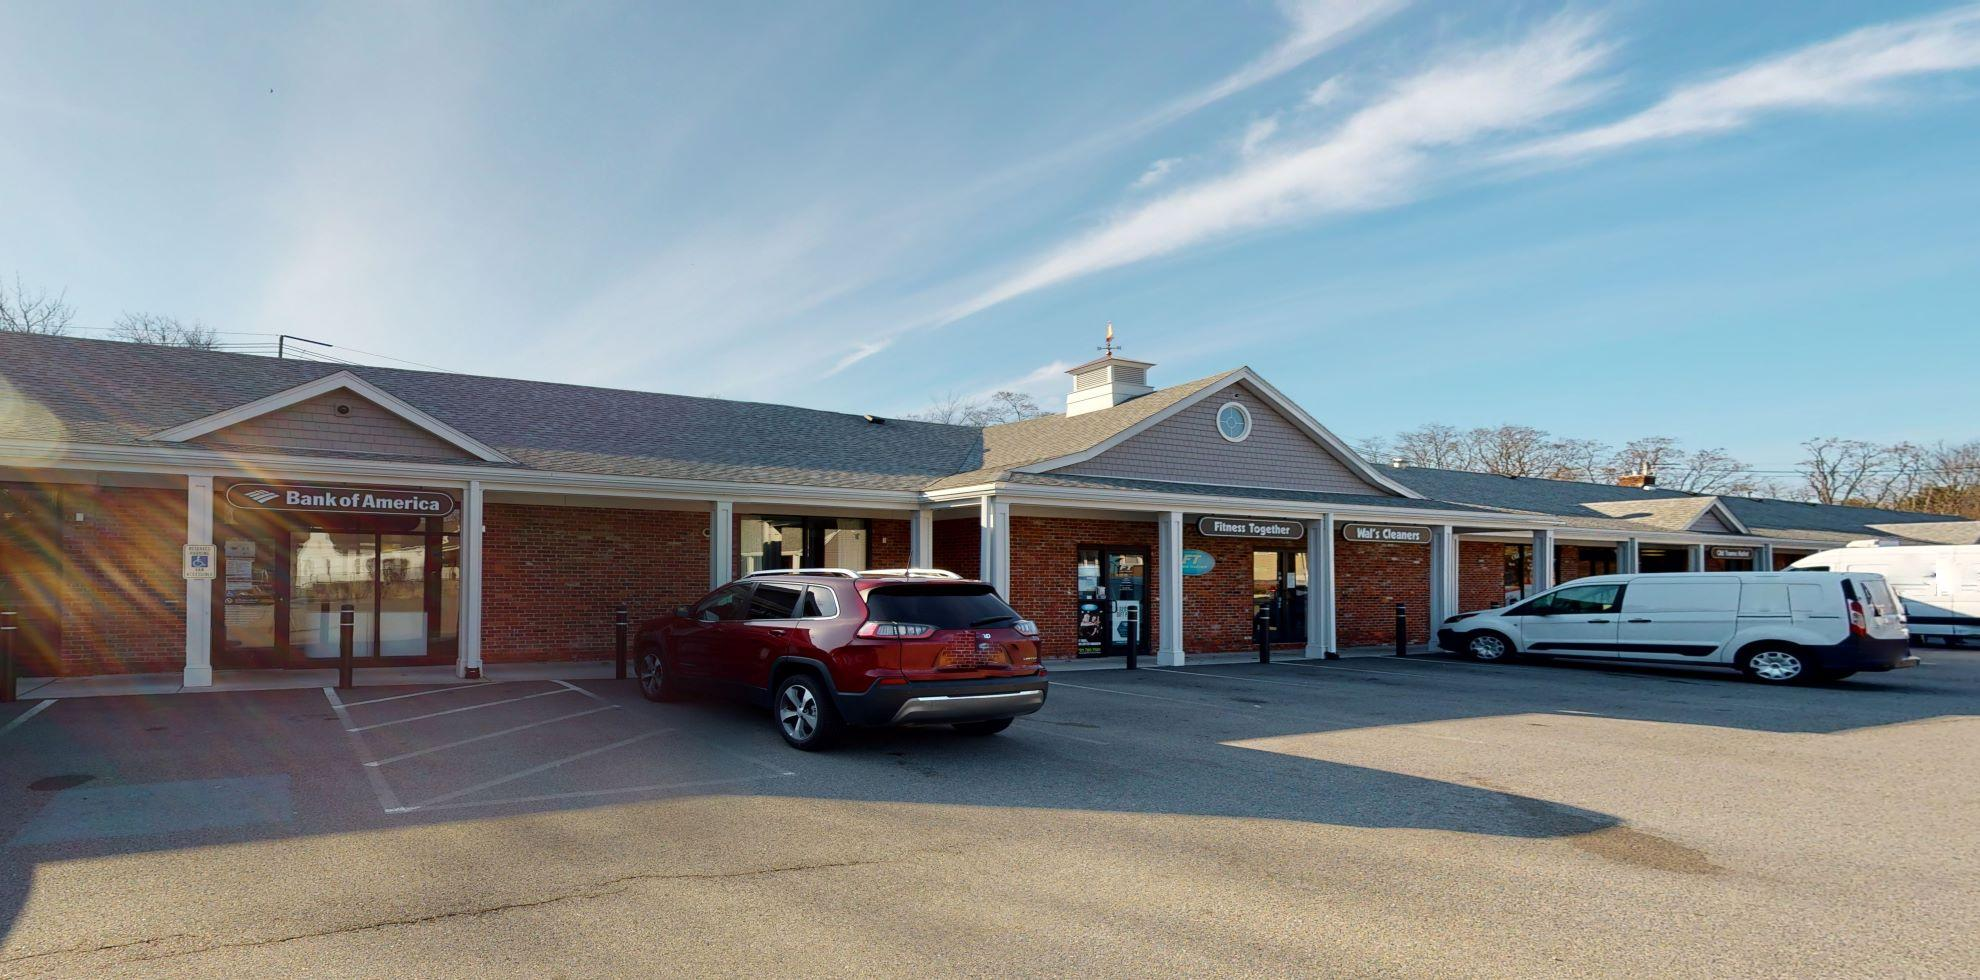 Bank of America financial center with walk-up ATM | 1 Post Office Sq, Lynnfield, MA 01940